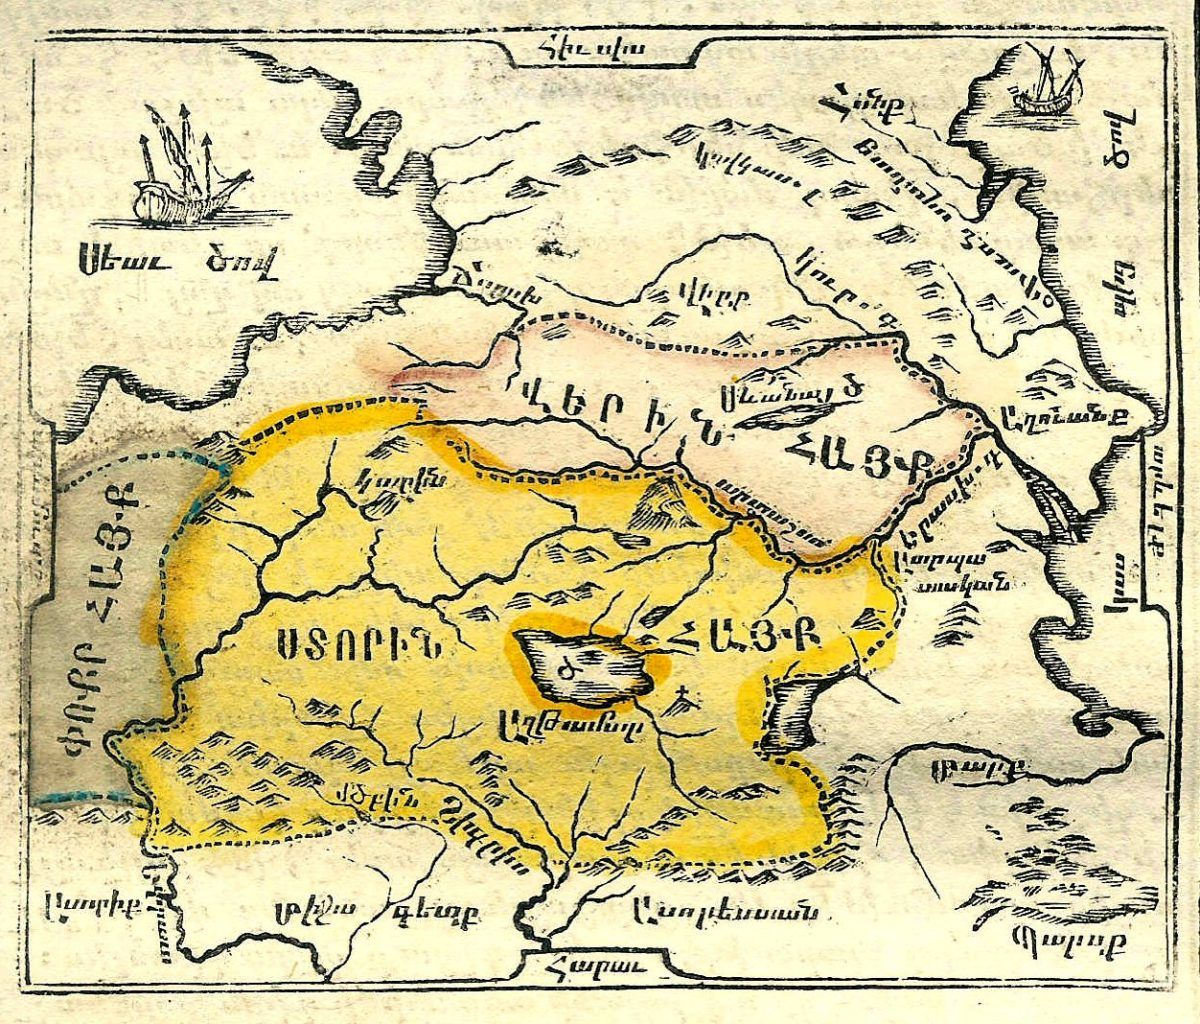 The map of Armenia from the book 'History of Armenia' by Chamchiats, 1784